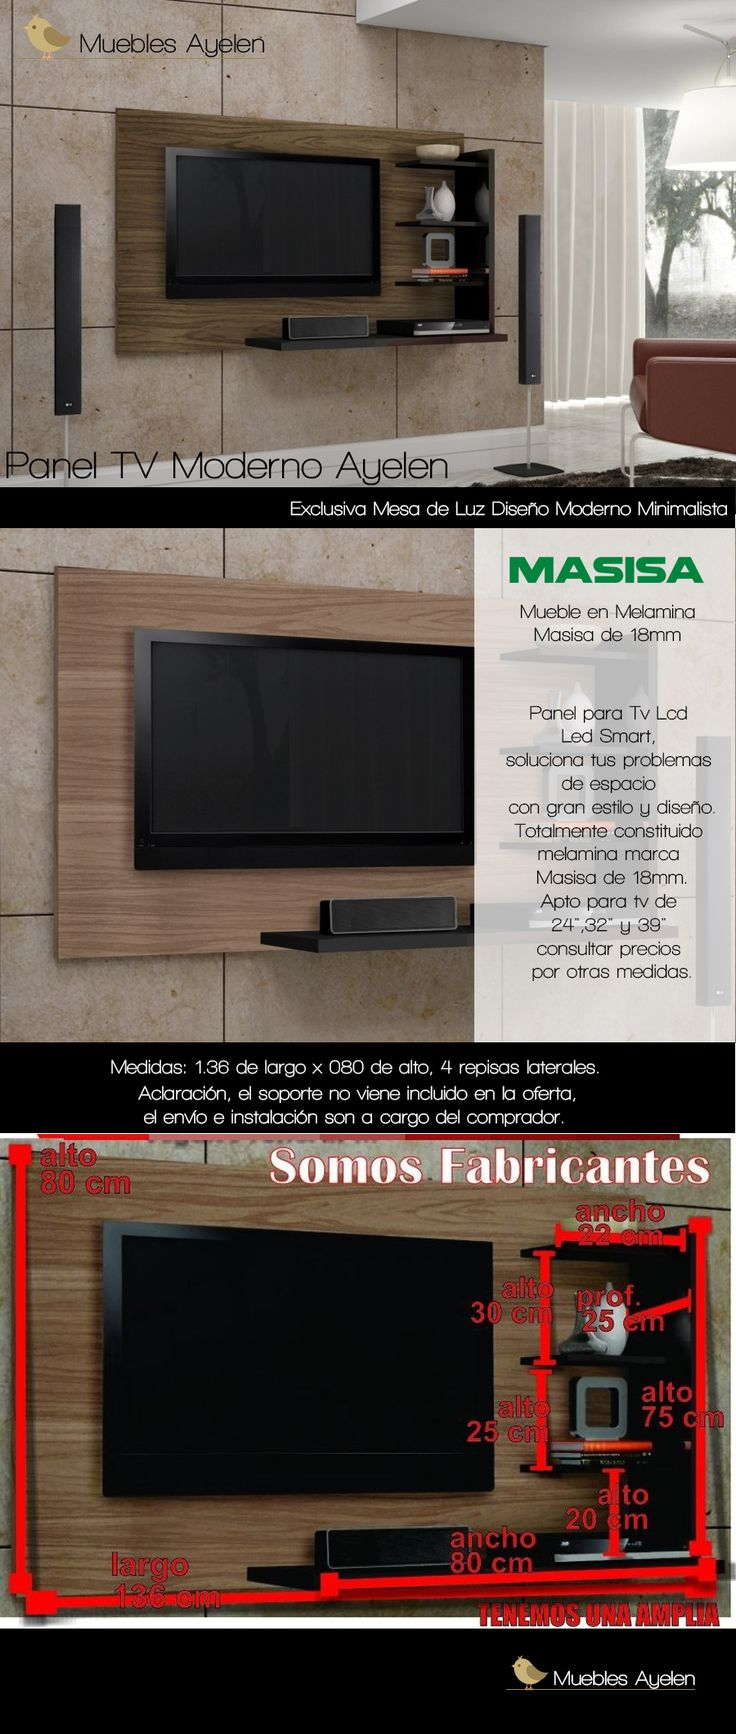 Nuevo Panel,tv  Rak Repisa Dvd.. Panel Moderno...... - $ 1.450,00